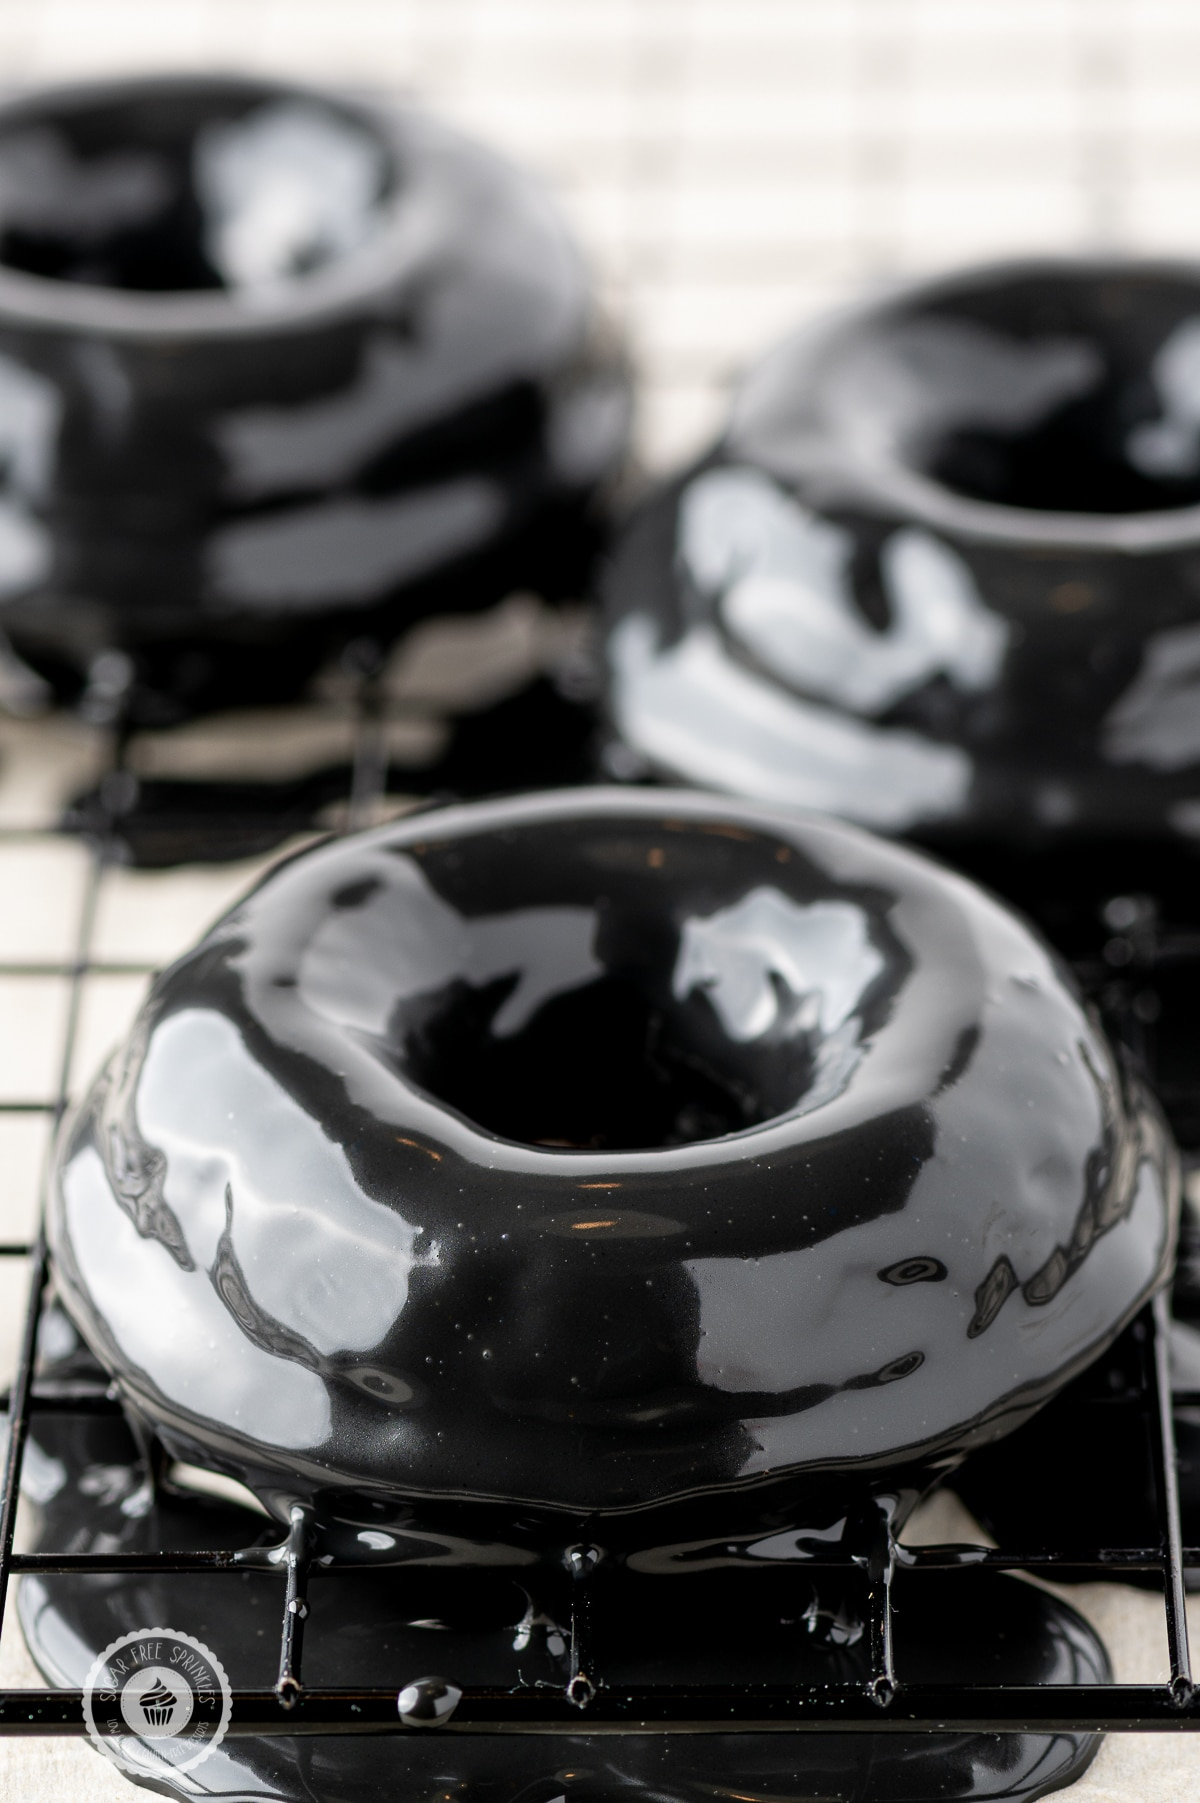 Black shiny ganache coated donuts on a cooling rack